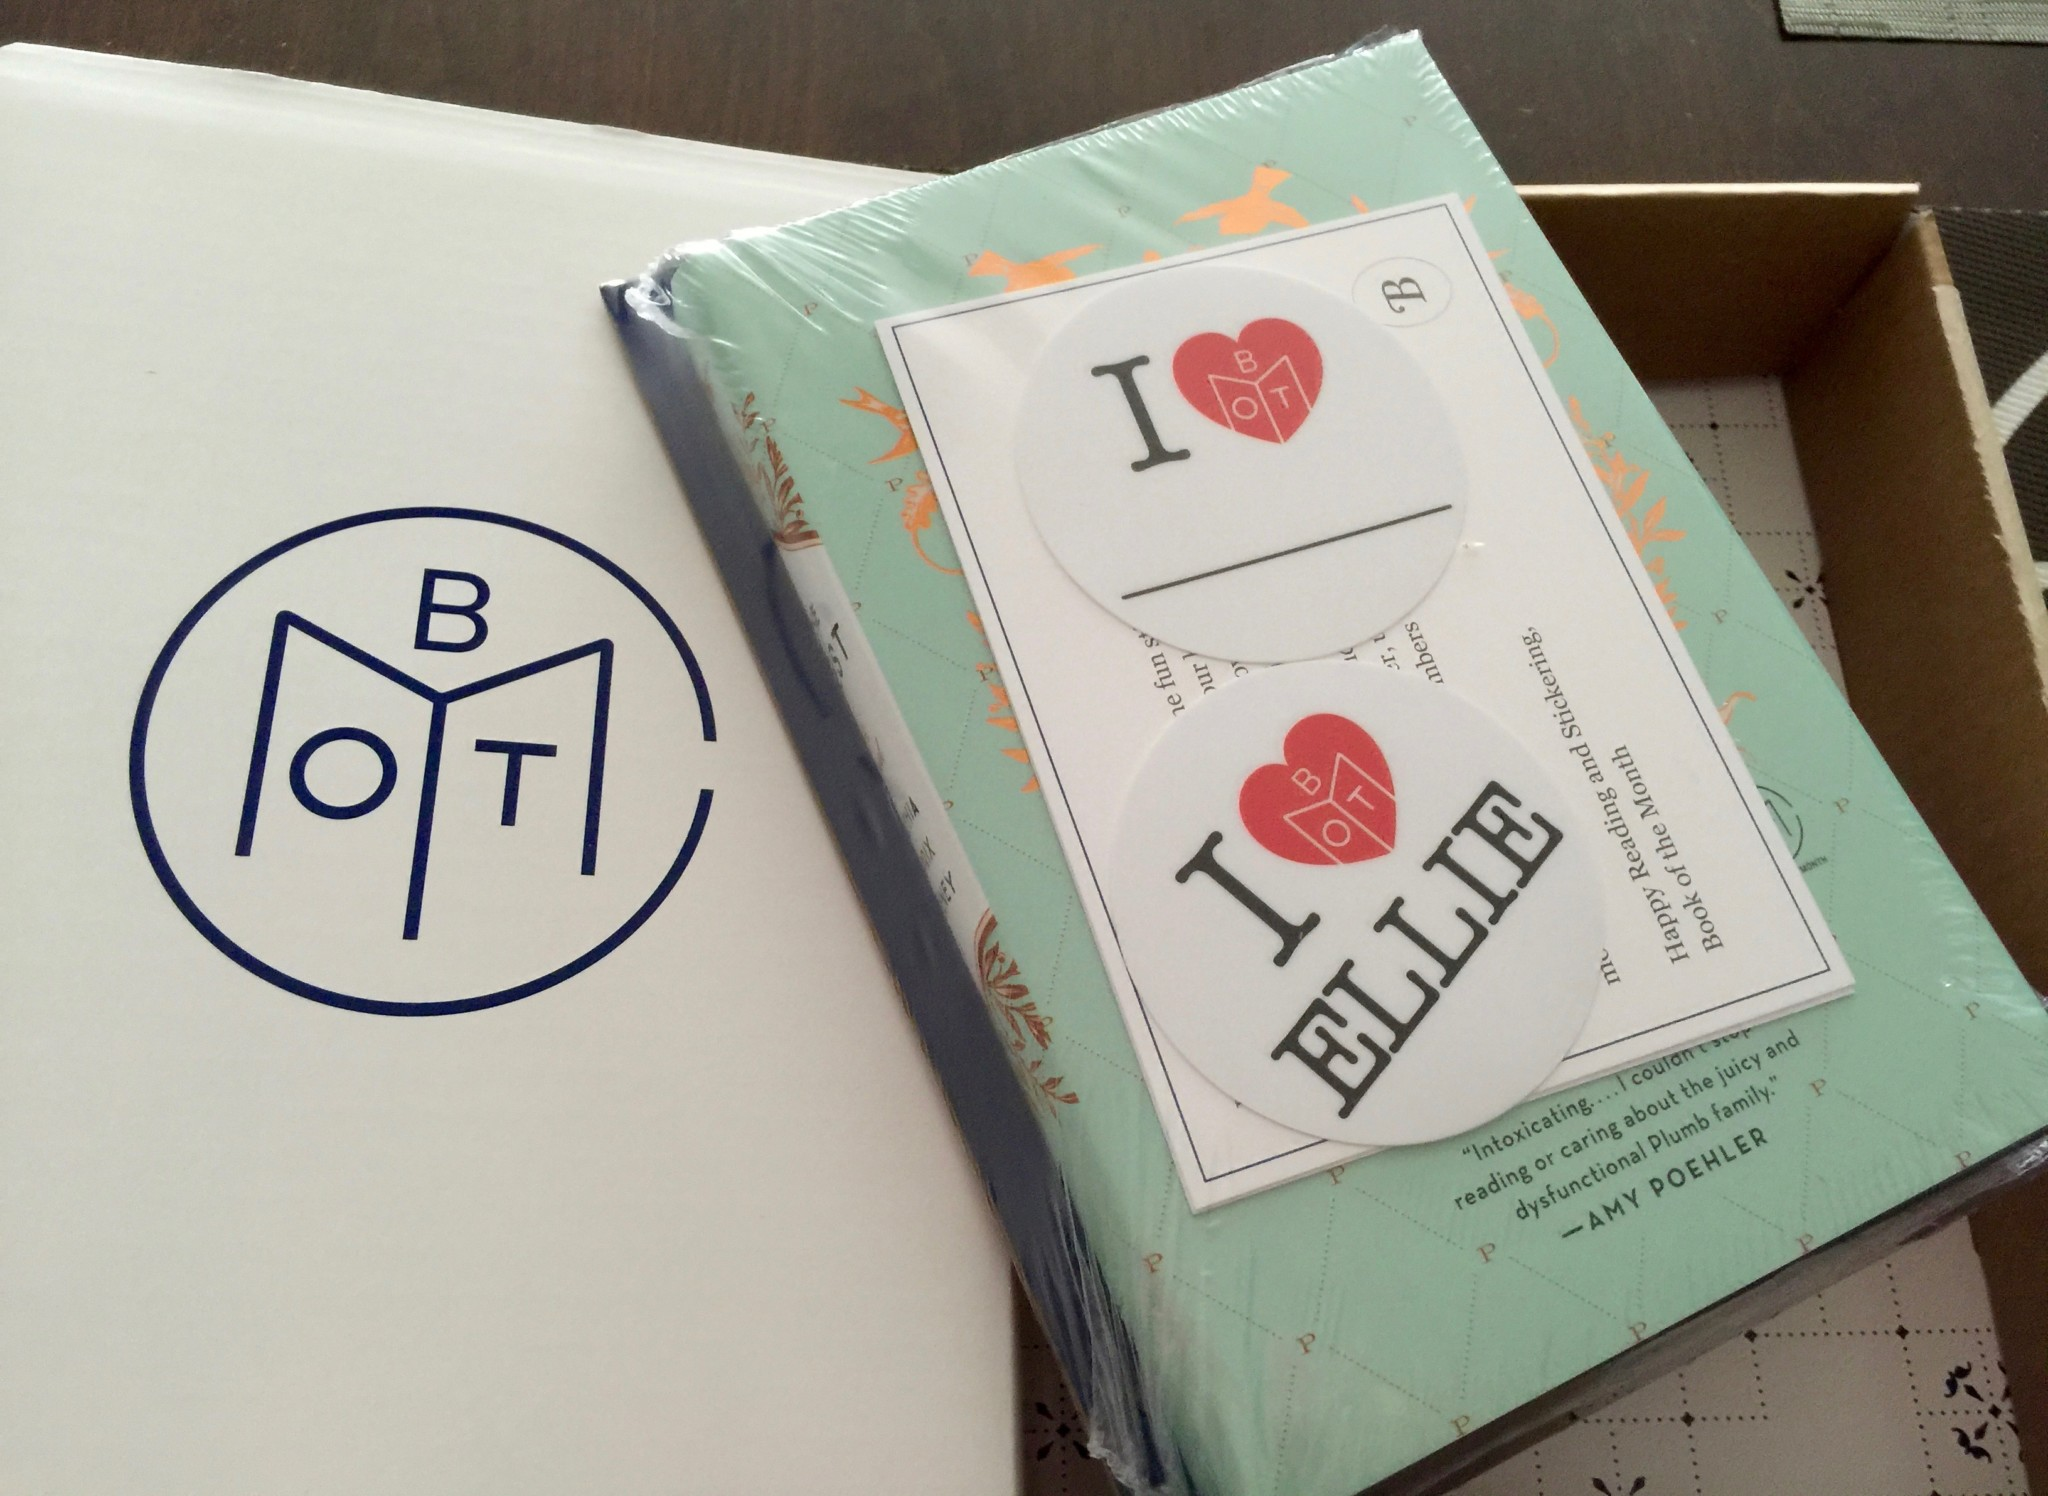 April's Book of the Month with The Nest